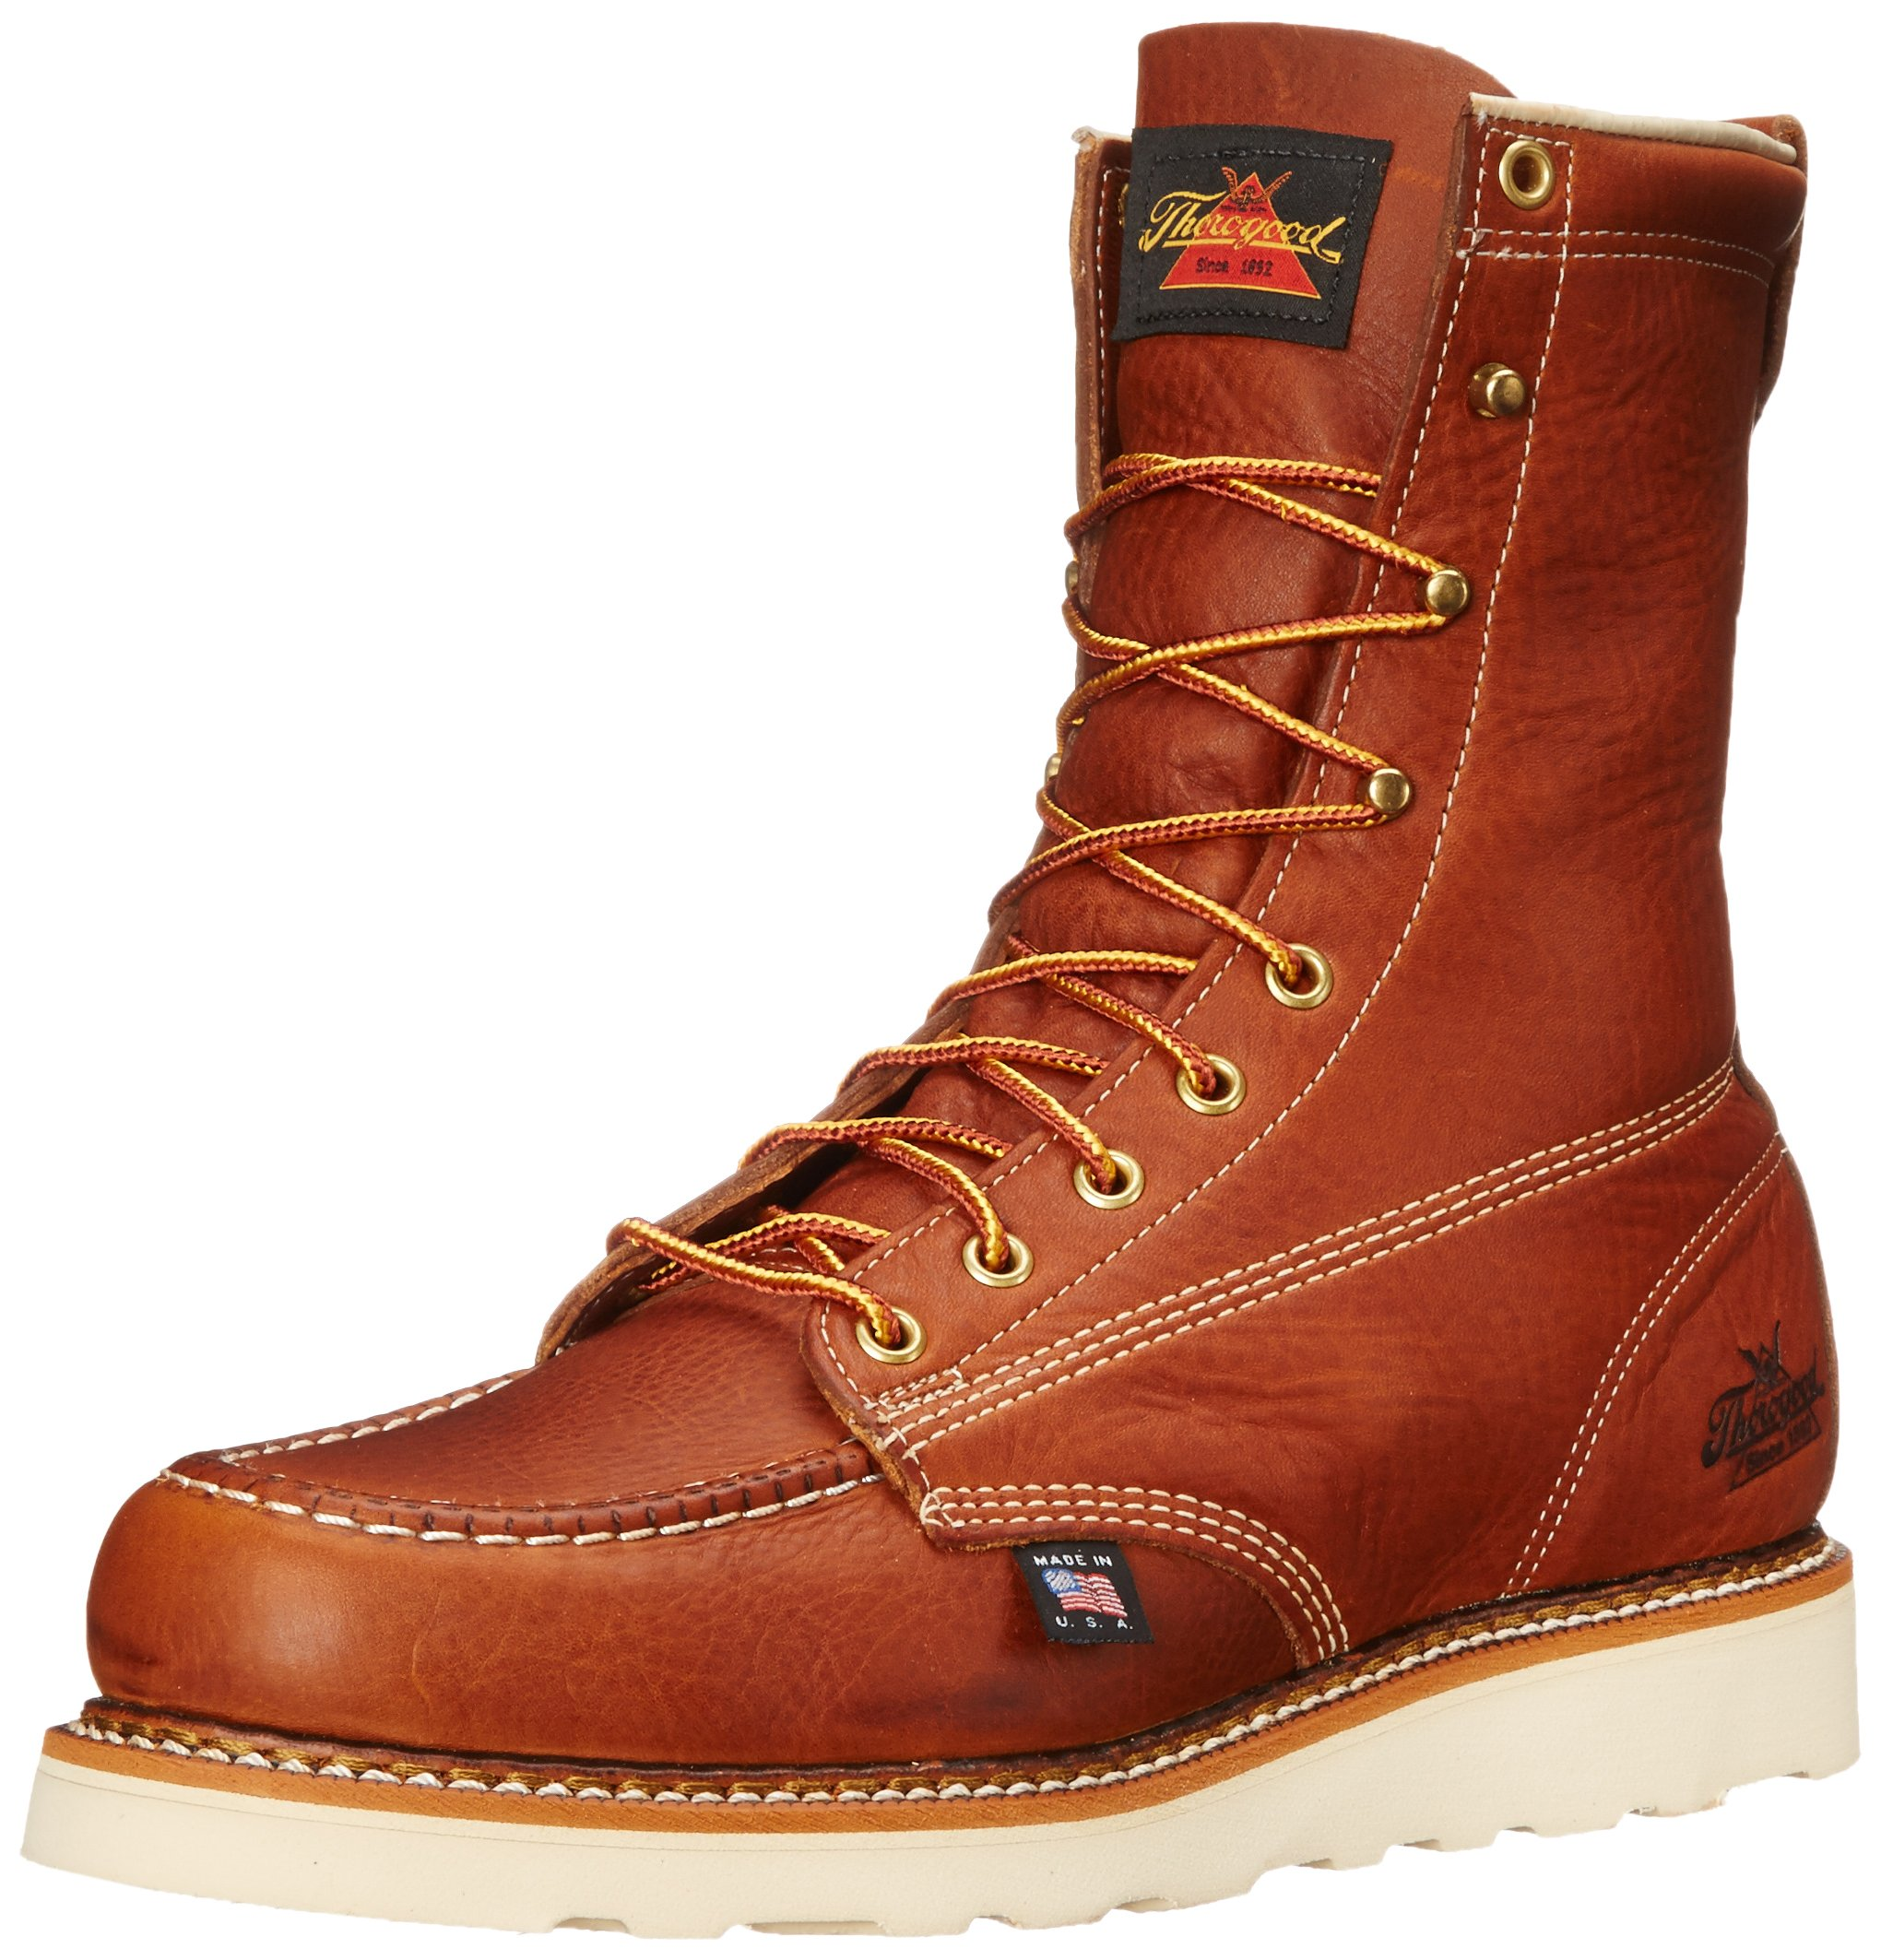 Thorogood American Heritage 8'' Moc Toe Boot, Tobacco Gladiator, 10 D US